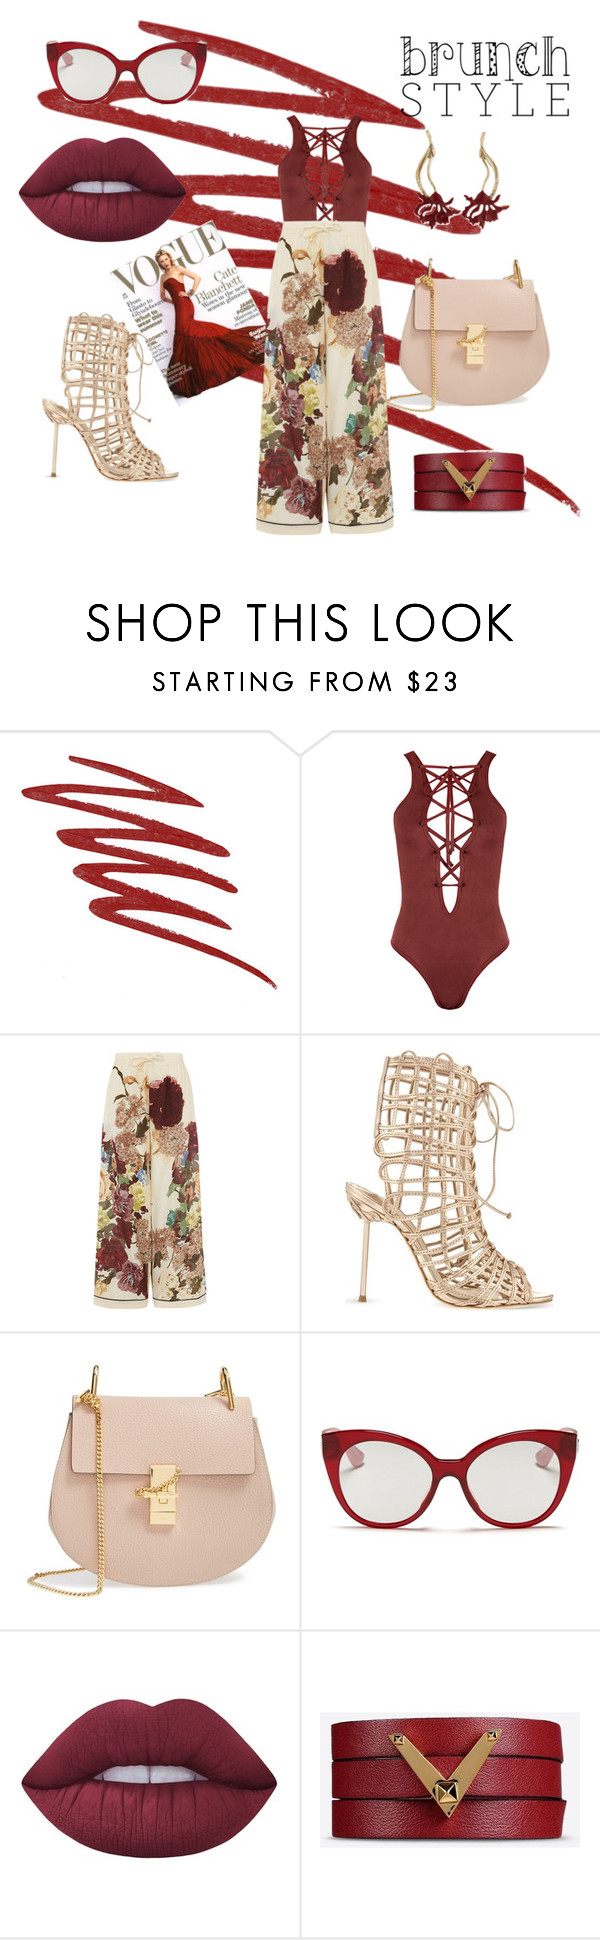 """""""Brunch"""" by sweetphashion ❤ liked on Polyvore featuring NARS Cosmetics, WearAll, Valentino, Sophia Webster, Chloé, Miu Miu, Lime Crime, Oscar de la Renta, sunday and brunch"""